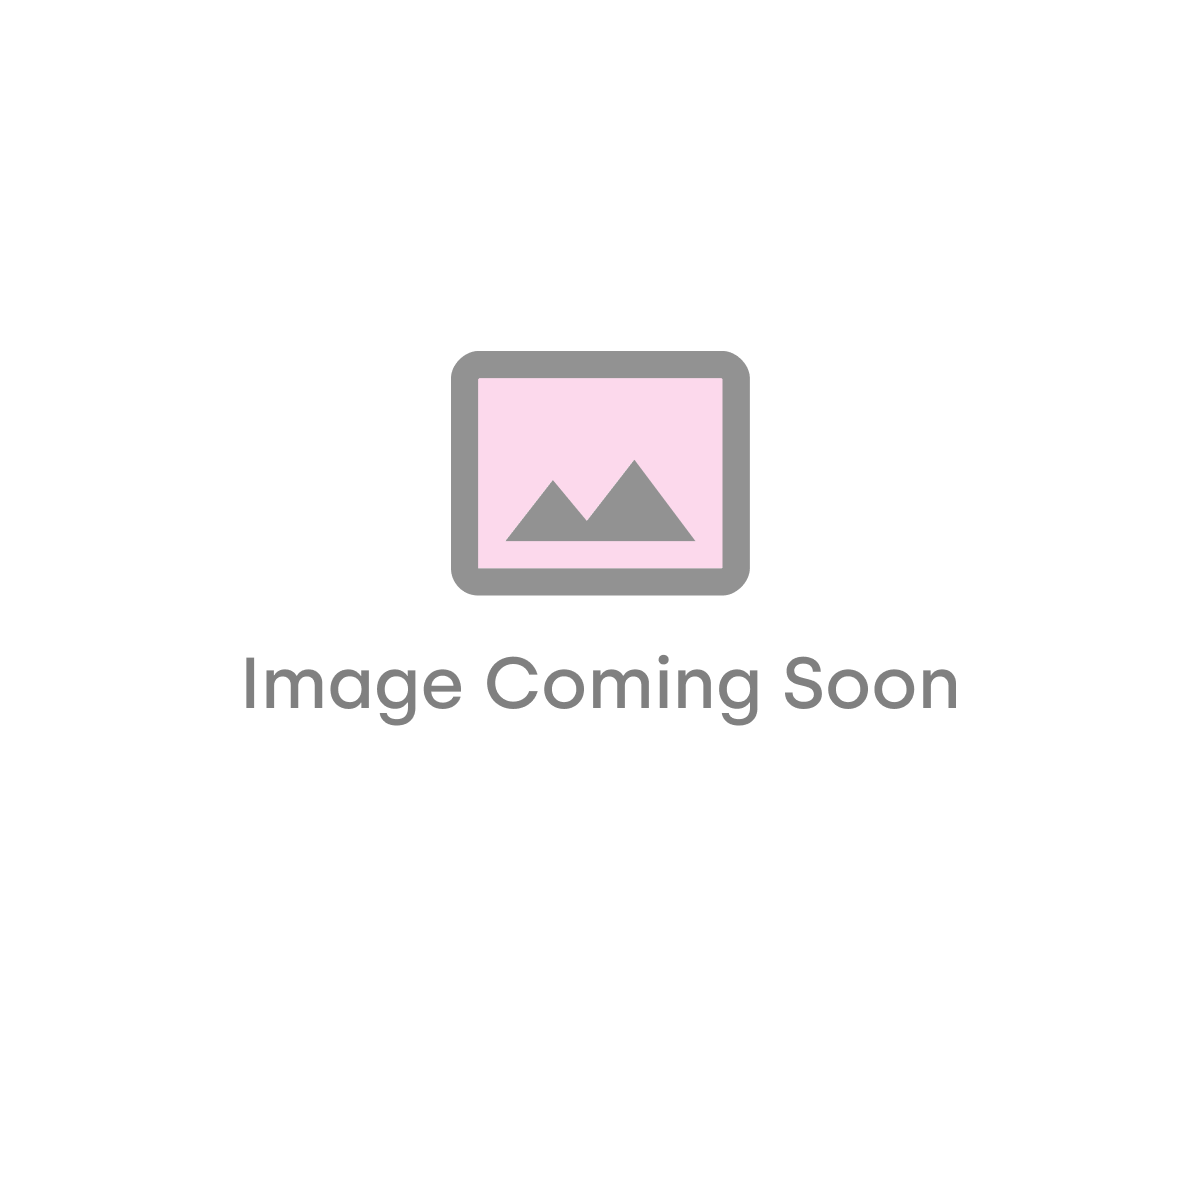 LoCo 1200 x 500mm Straight Heated Towel Rail - Chrome (19680)